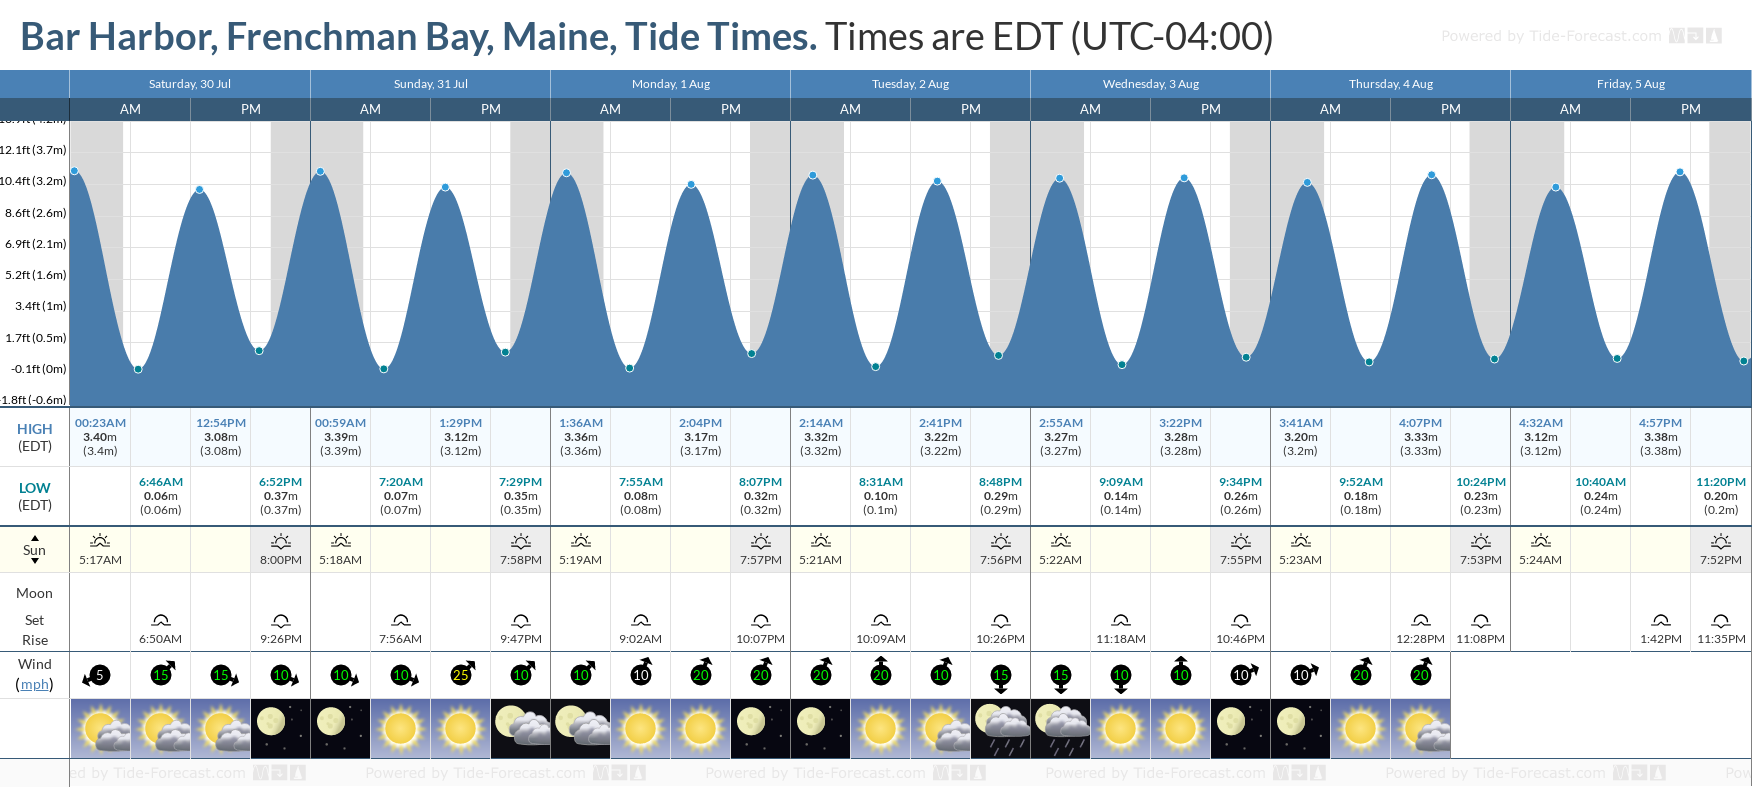 Bar Harbor, Frenchman Bay, Maine Tide Chart including high and low tide tide times for the next 7 days